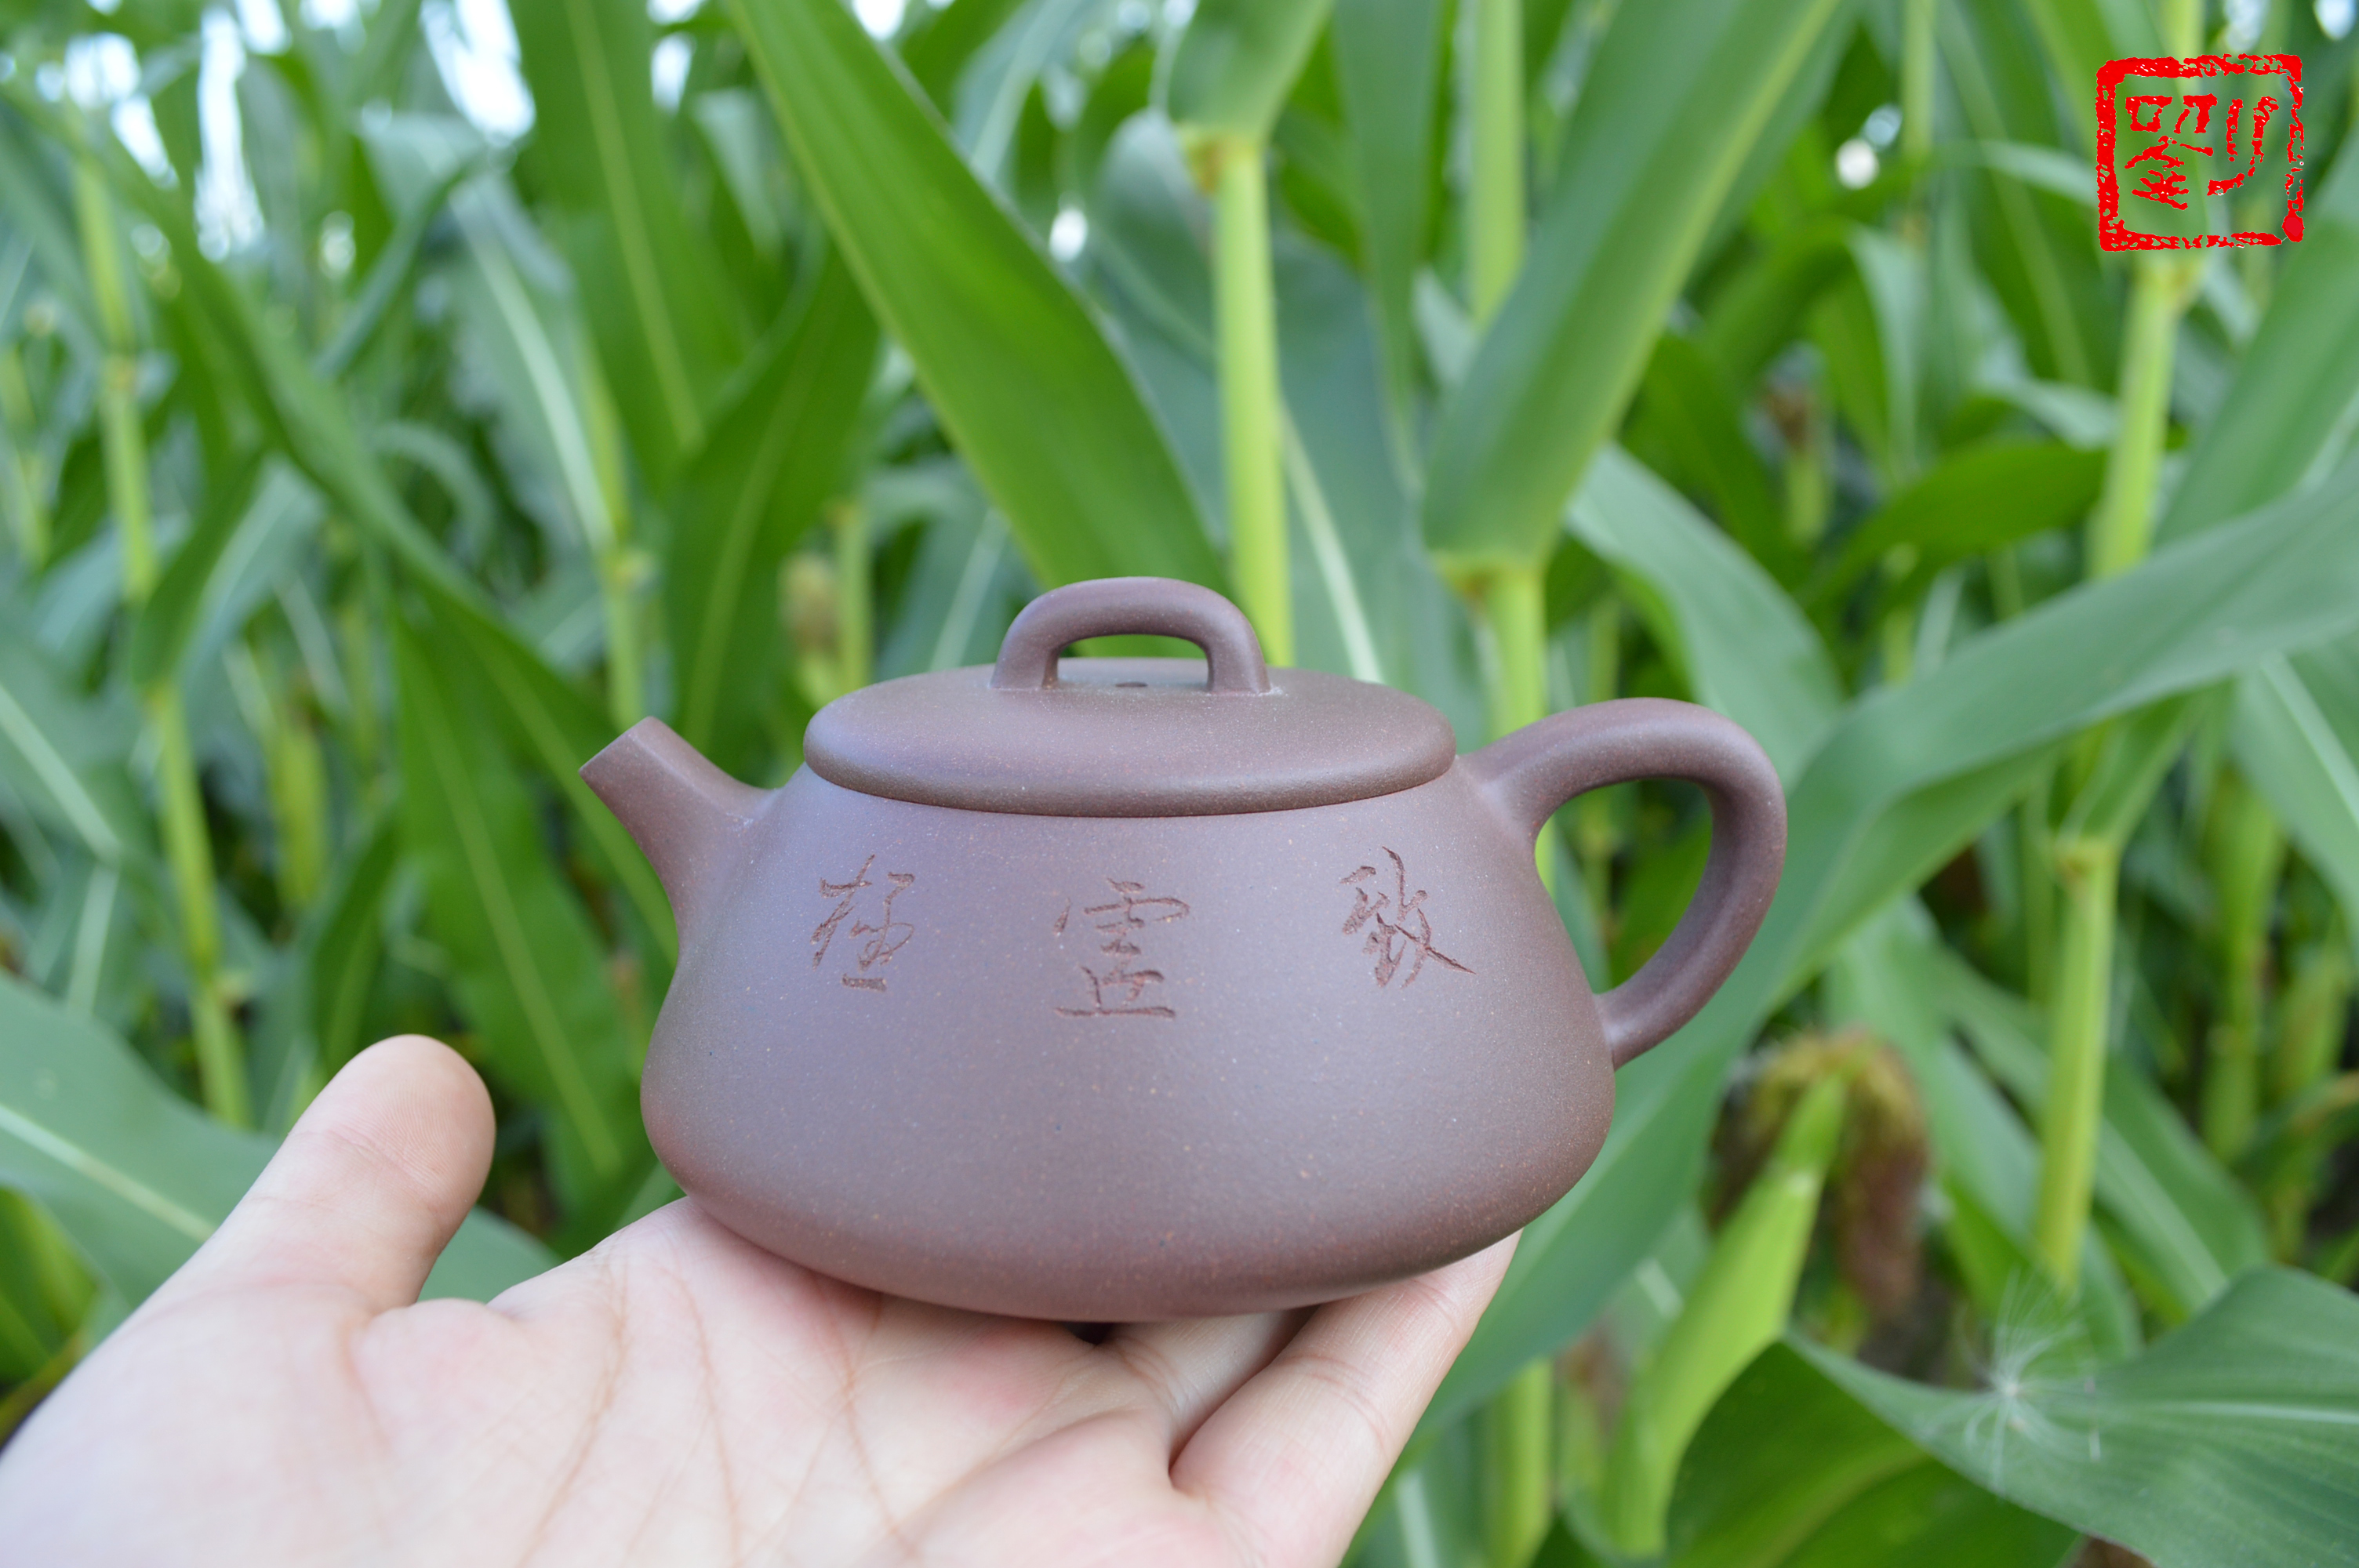 https://shop.liu-tea-art.com/wp-content/uploads/2019/07/1DSC_0312-1.jpg